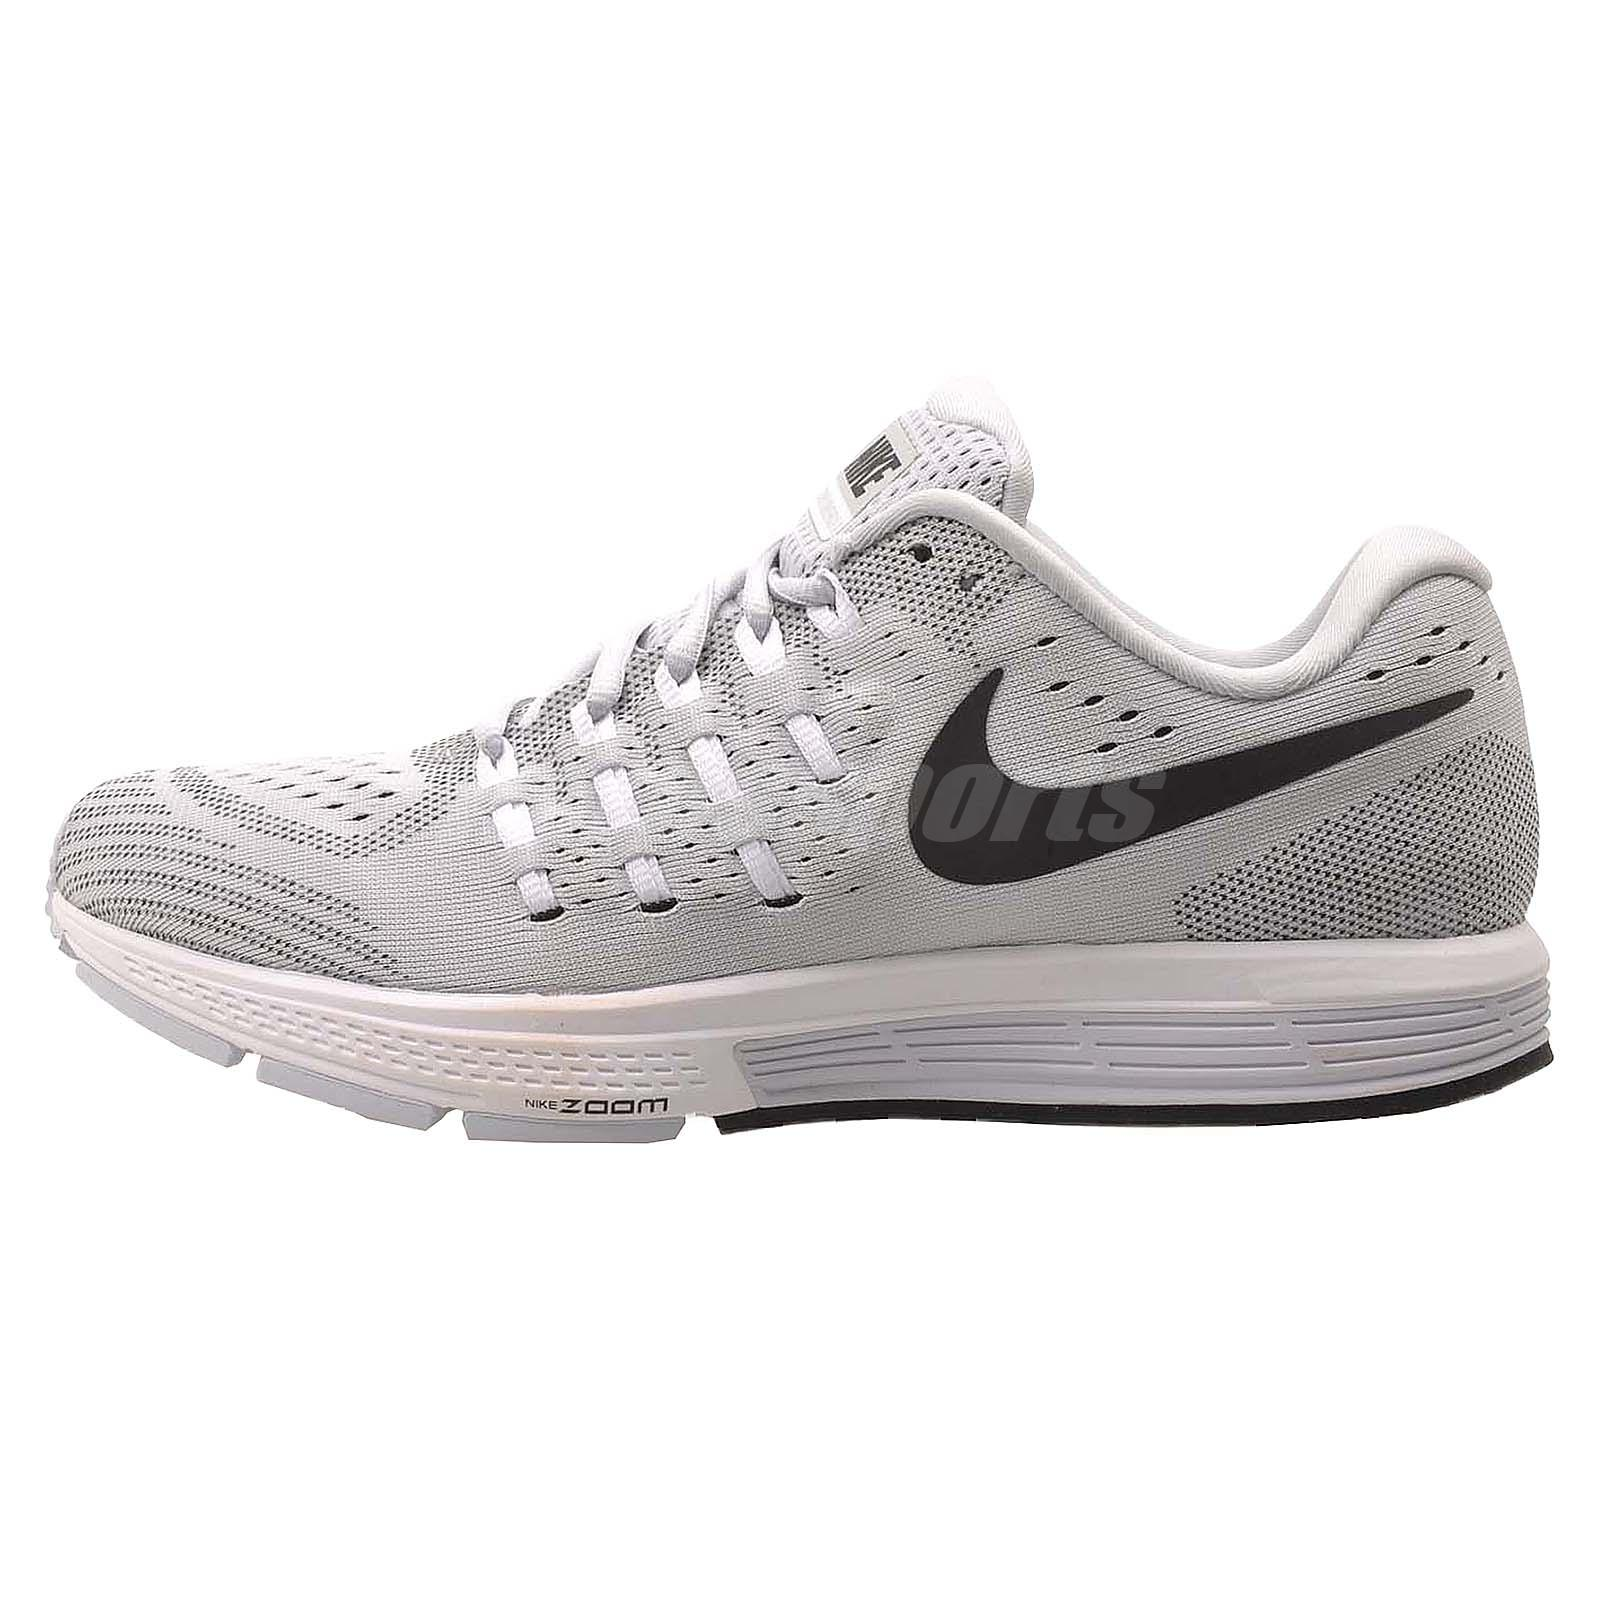 38a63c7fa8bf Details about Nike Wmns Air Zoom Vomero 11 Running Womens Shoes Platinum  818100-002